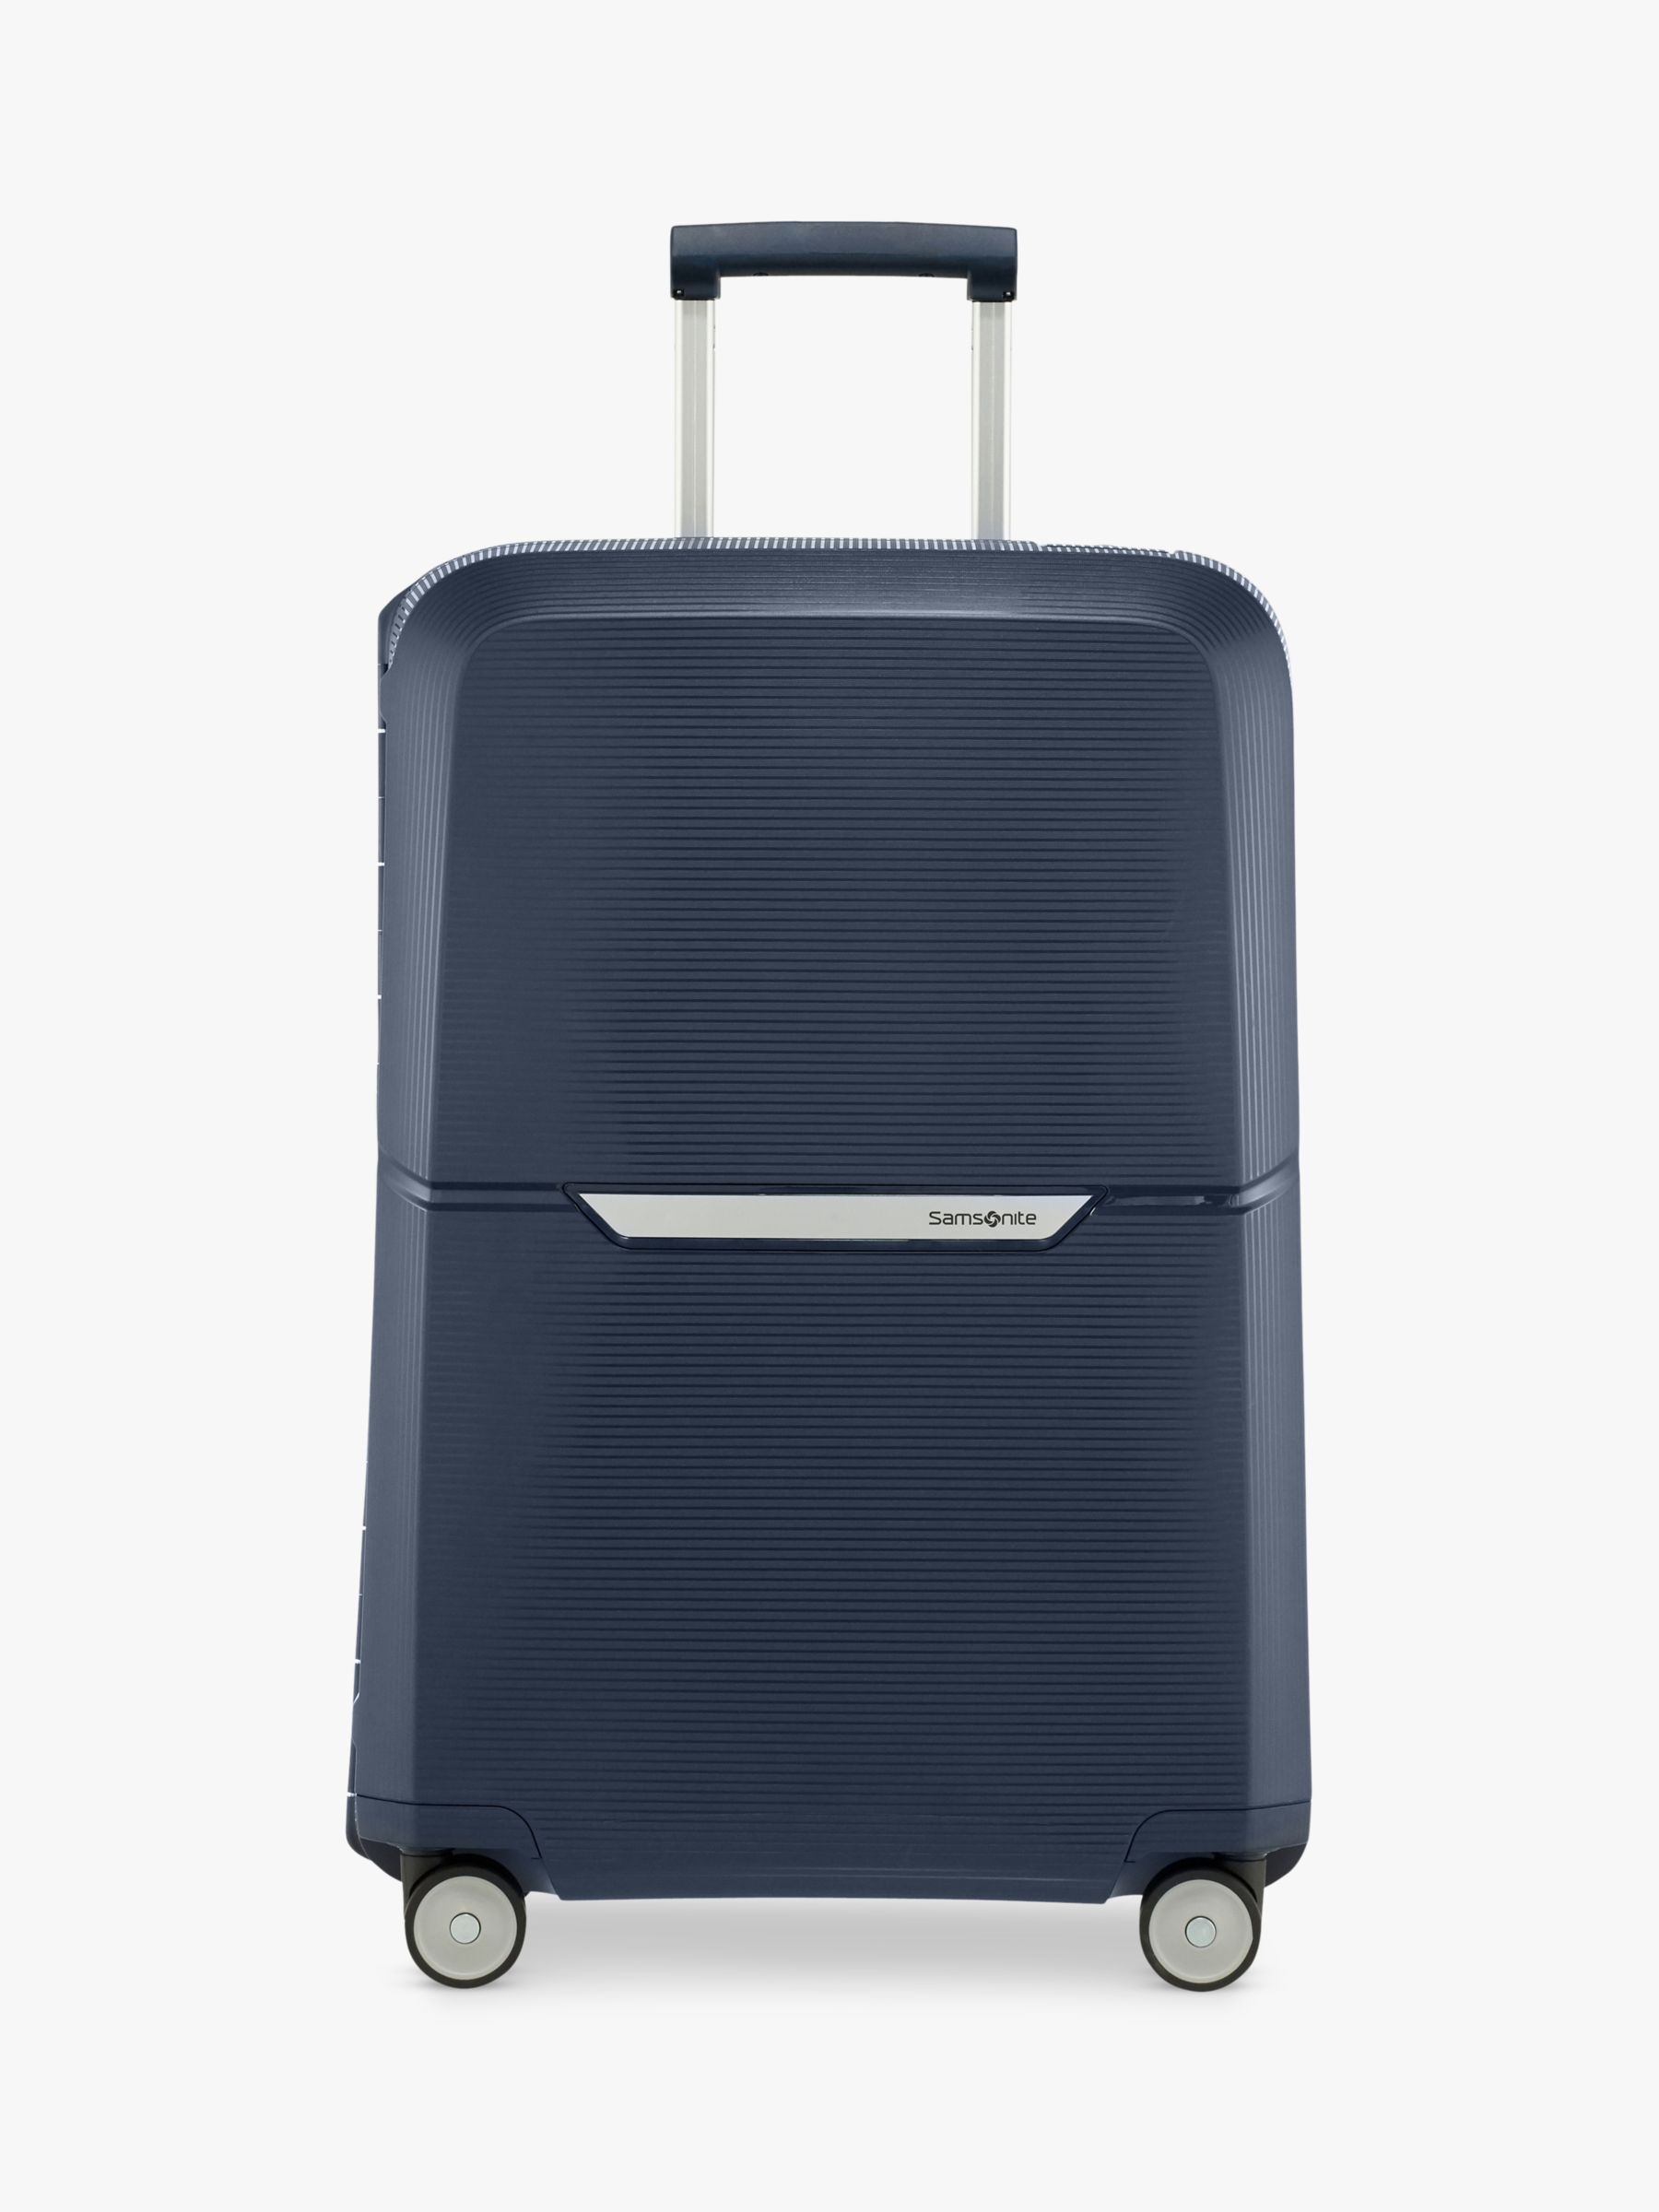 Samsonite Samsonite Magnum Spinner 4-Wheel 69cm Medium Case